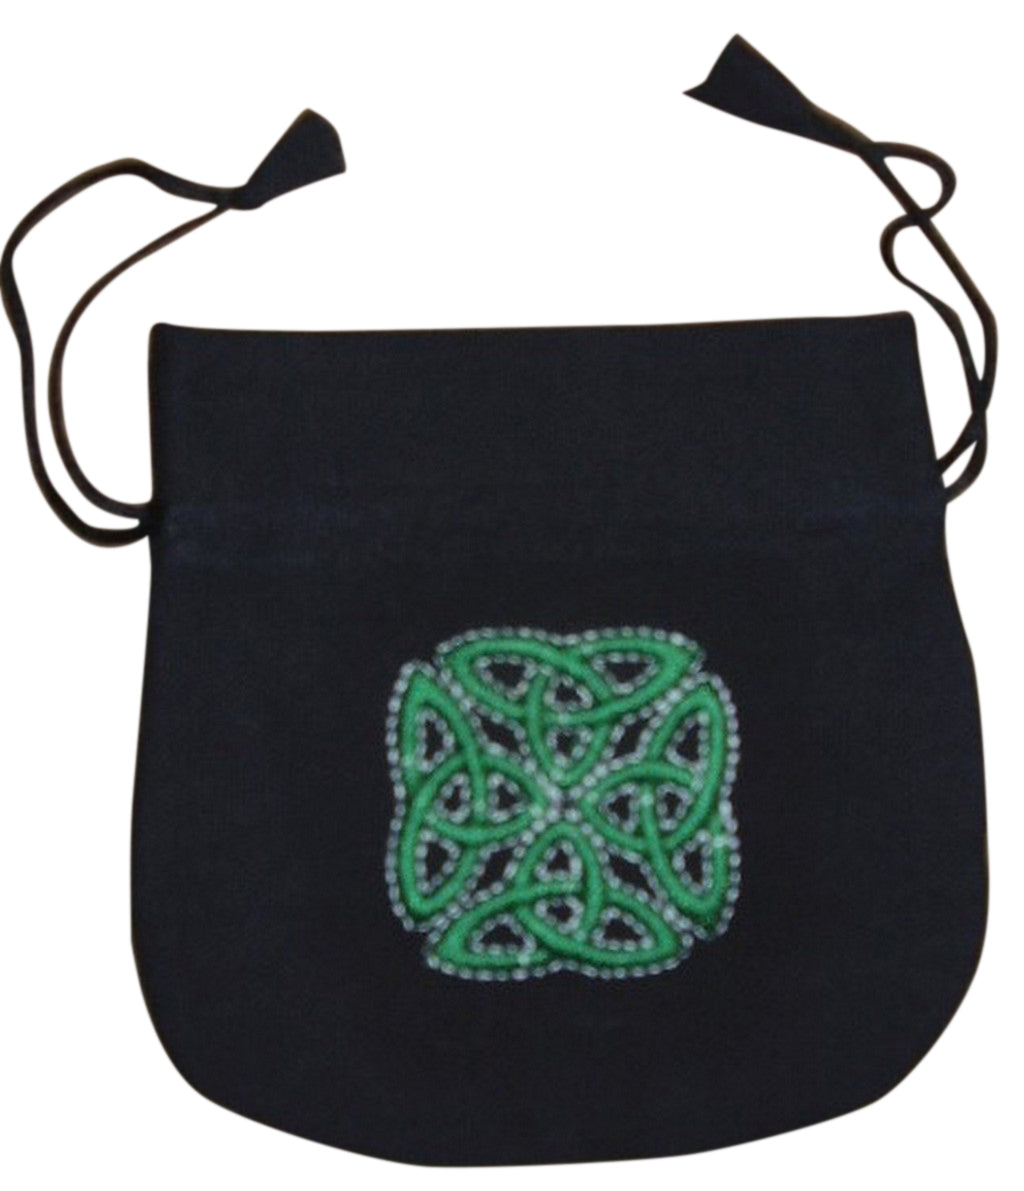 Tiny Embroidered Celtic Satchel Totem Bag 5 x 5 Green